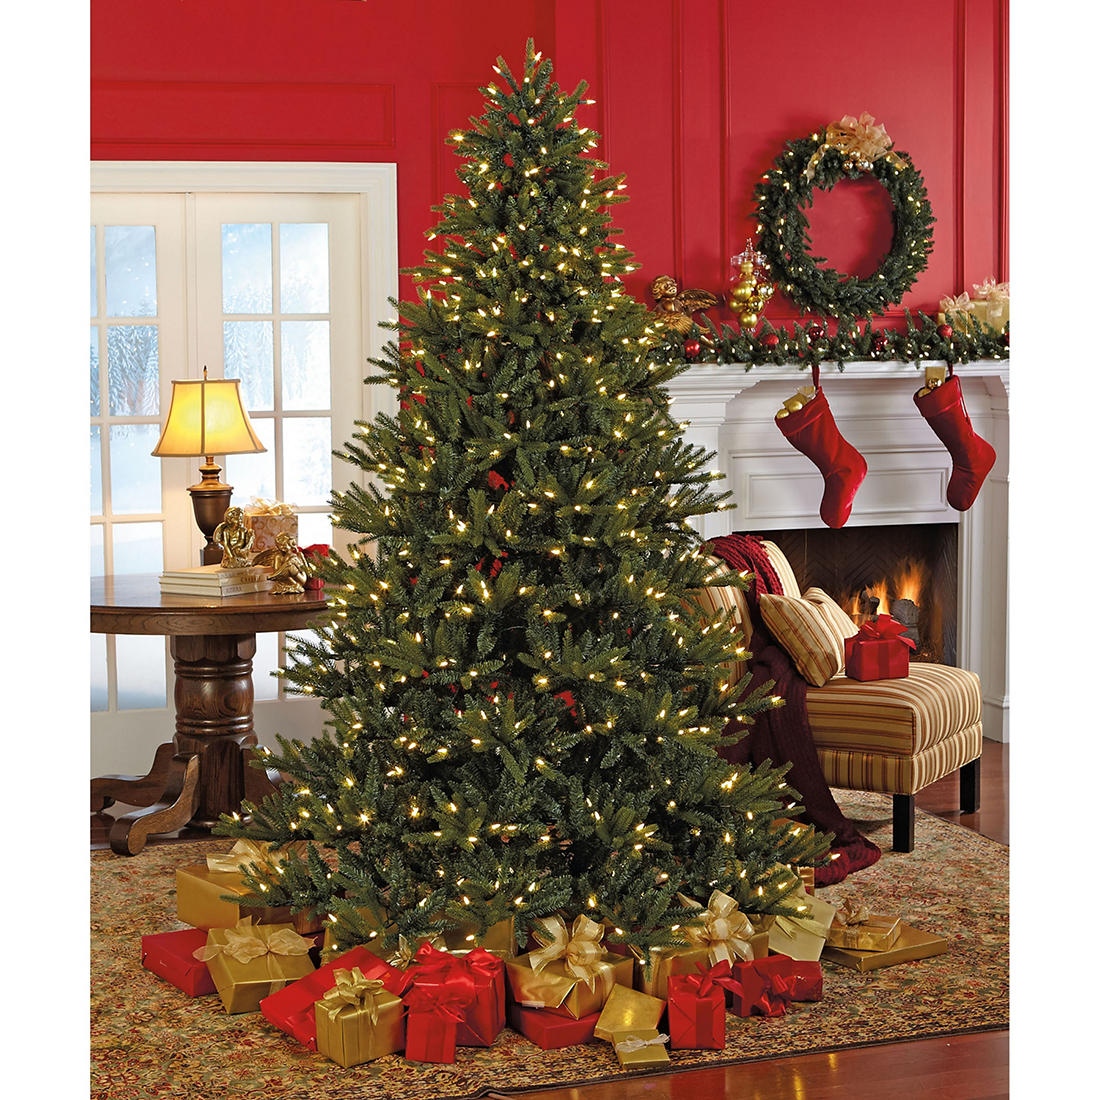 How Many Lights Per Foot Of Christmas Tree.Sylvania 7 5 8 Function Color Changing Prelit Led Tree With Foot Pedal